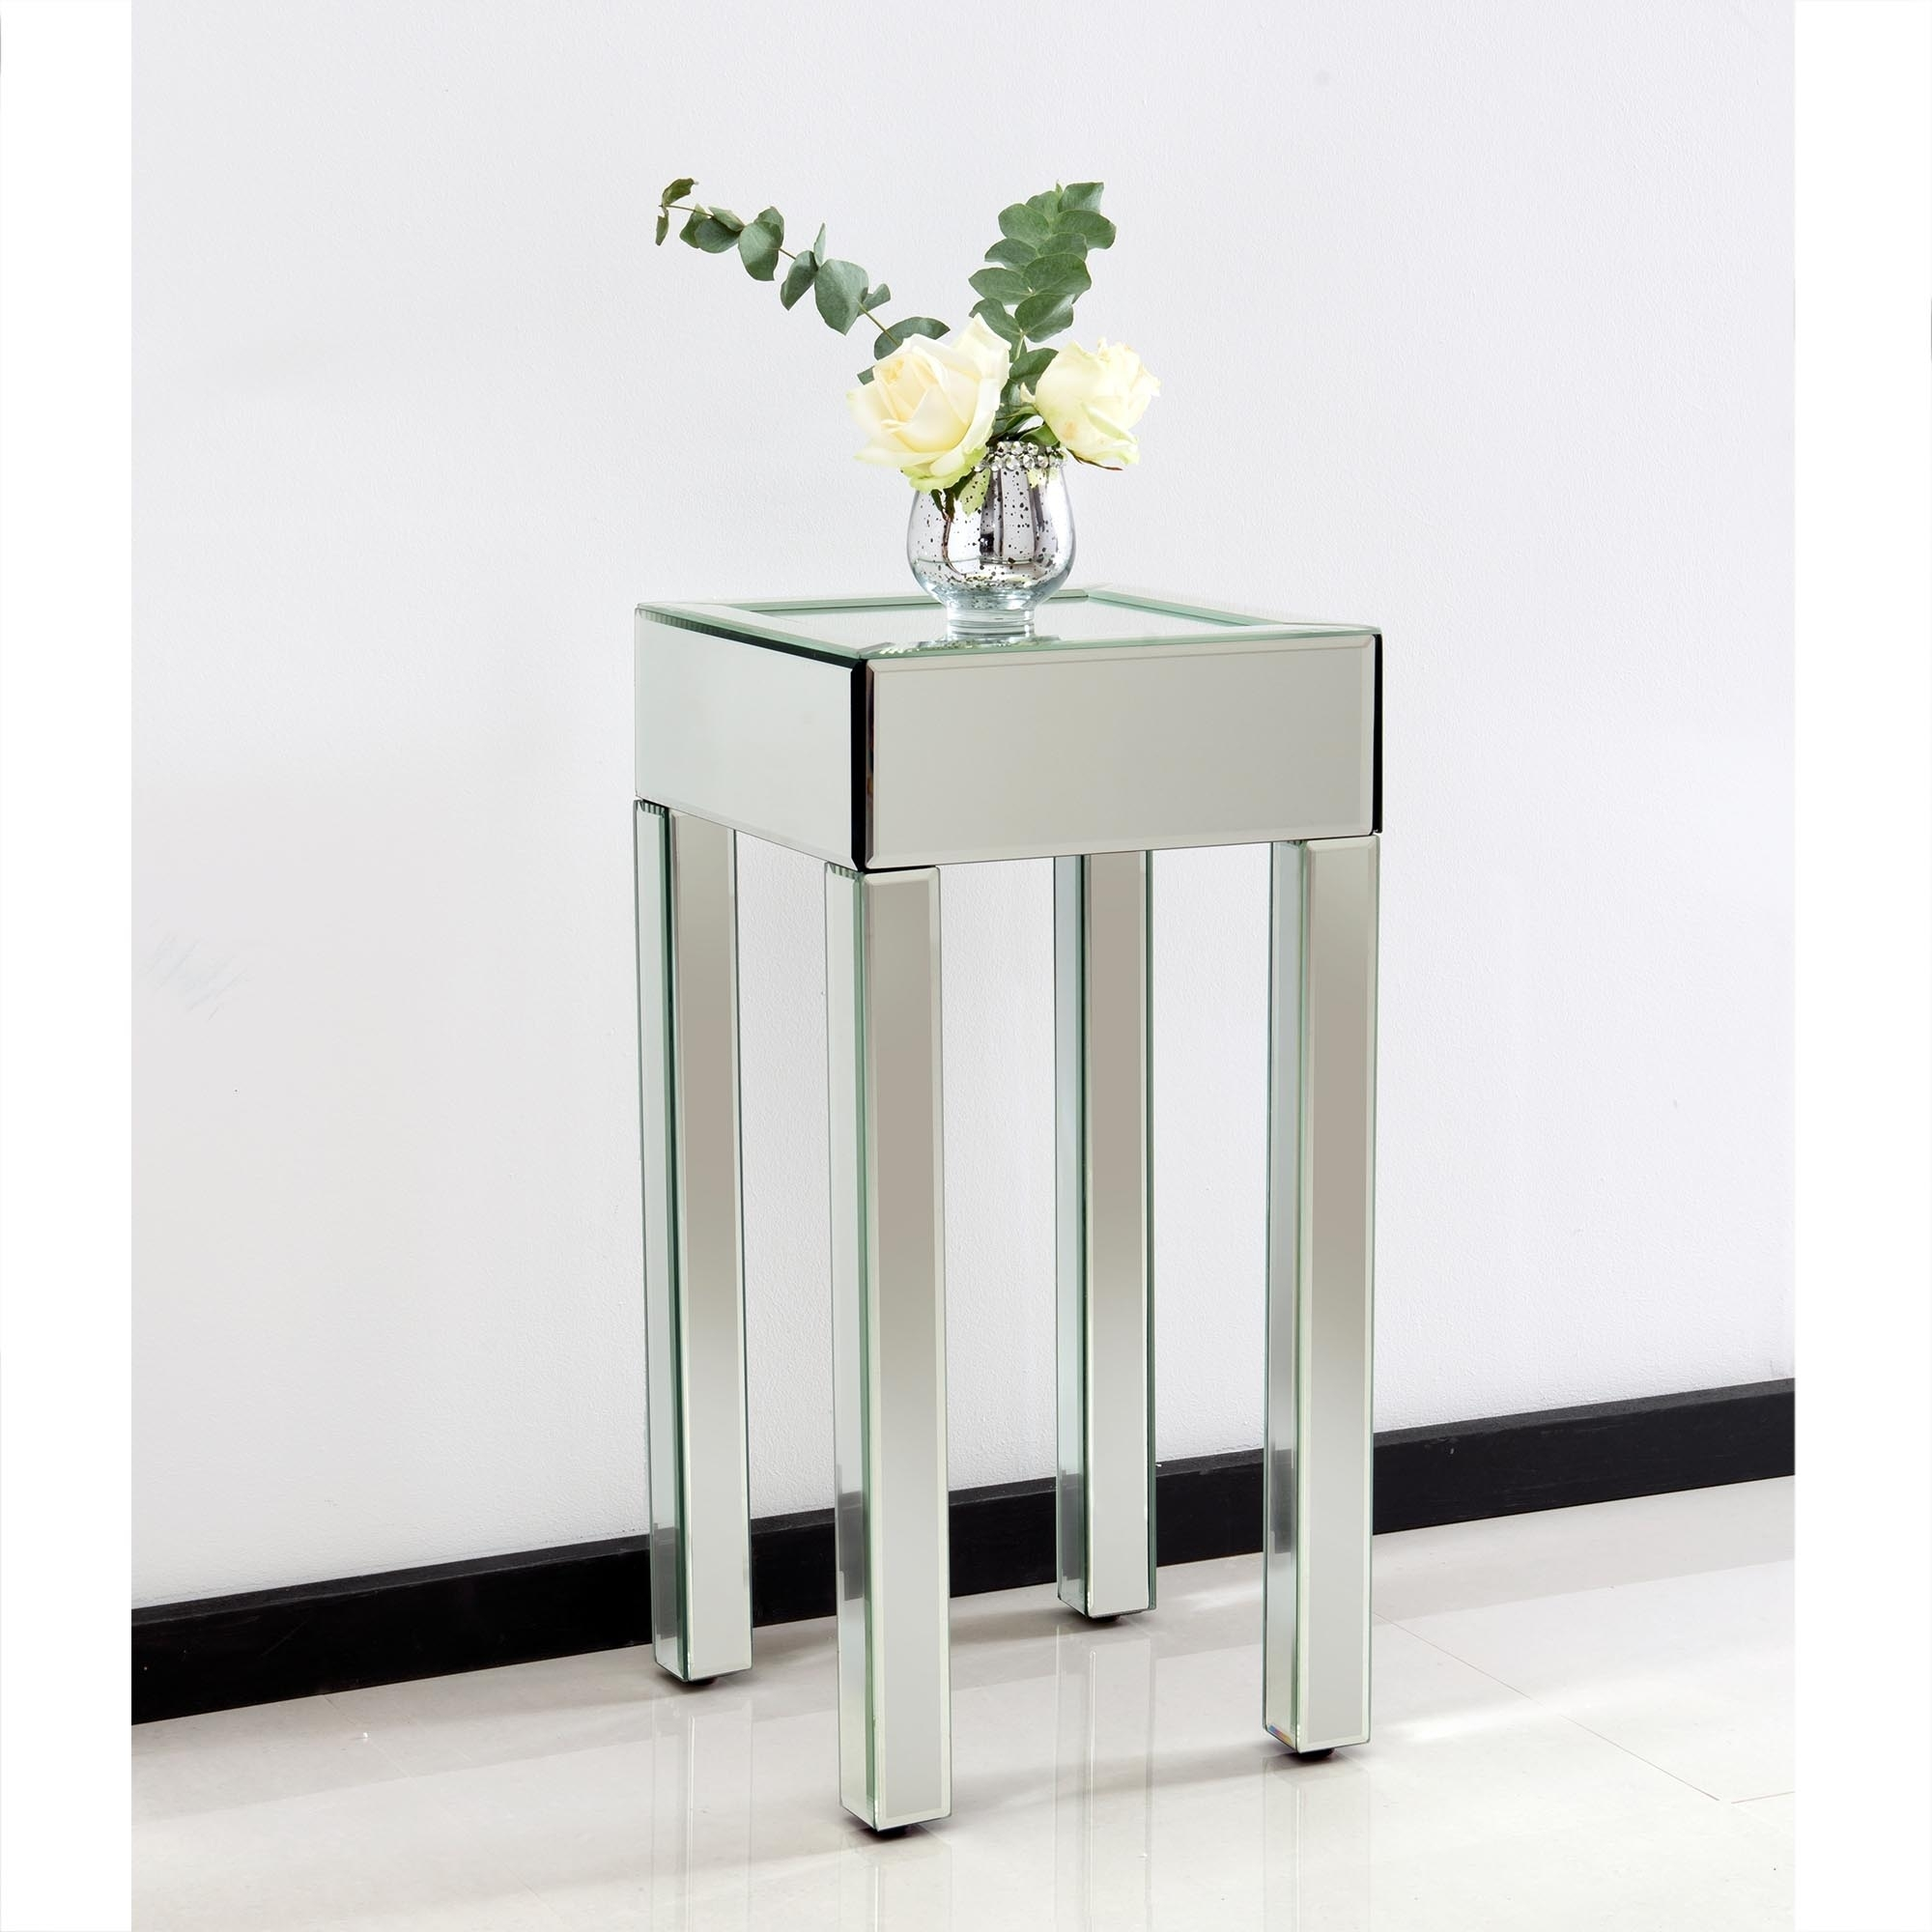 glamour popular side finishing beveled drawers design silver bed impressive with and mirror nightstand mirrored ideas elegant image modern table of designs looks steel reflection paneled furniture